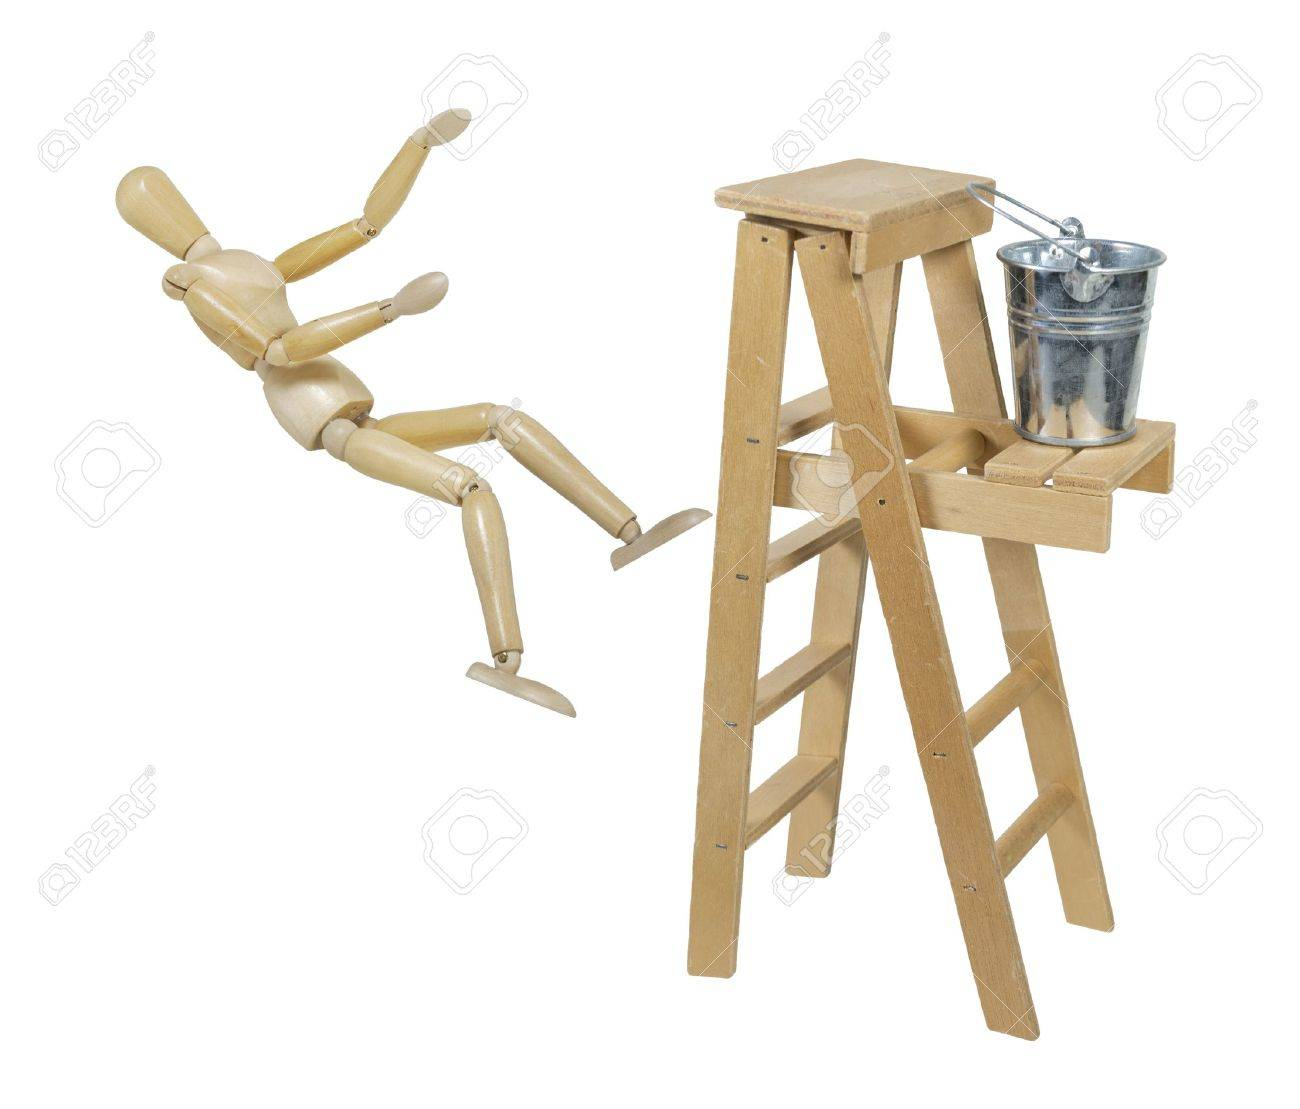 falling off a ladder used for moving up or reaching higher goals falling off a ladder used for moving up or reaching higher goals stock photo 15544578